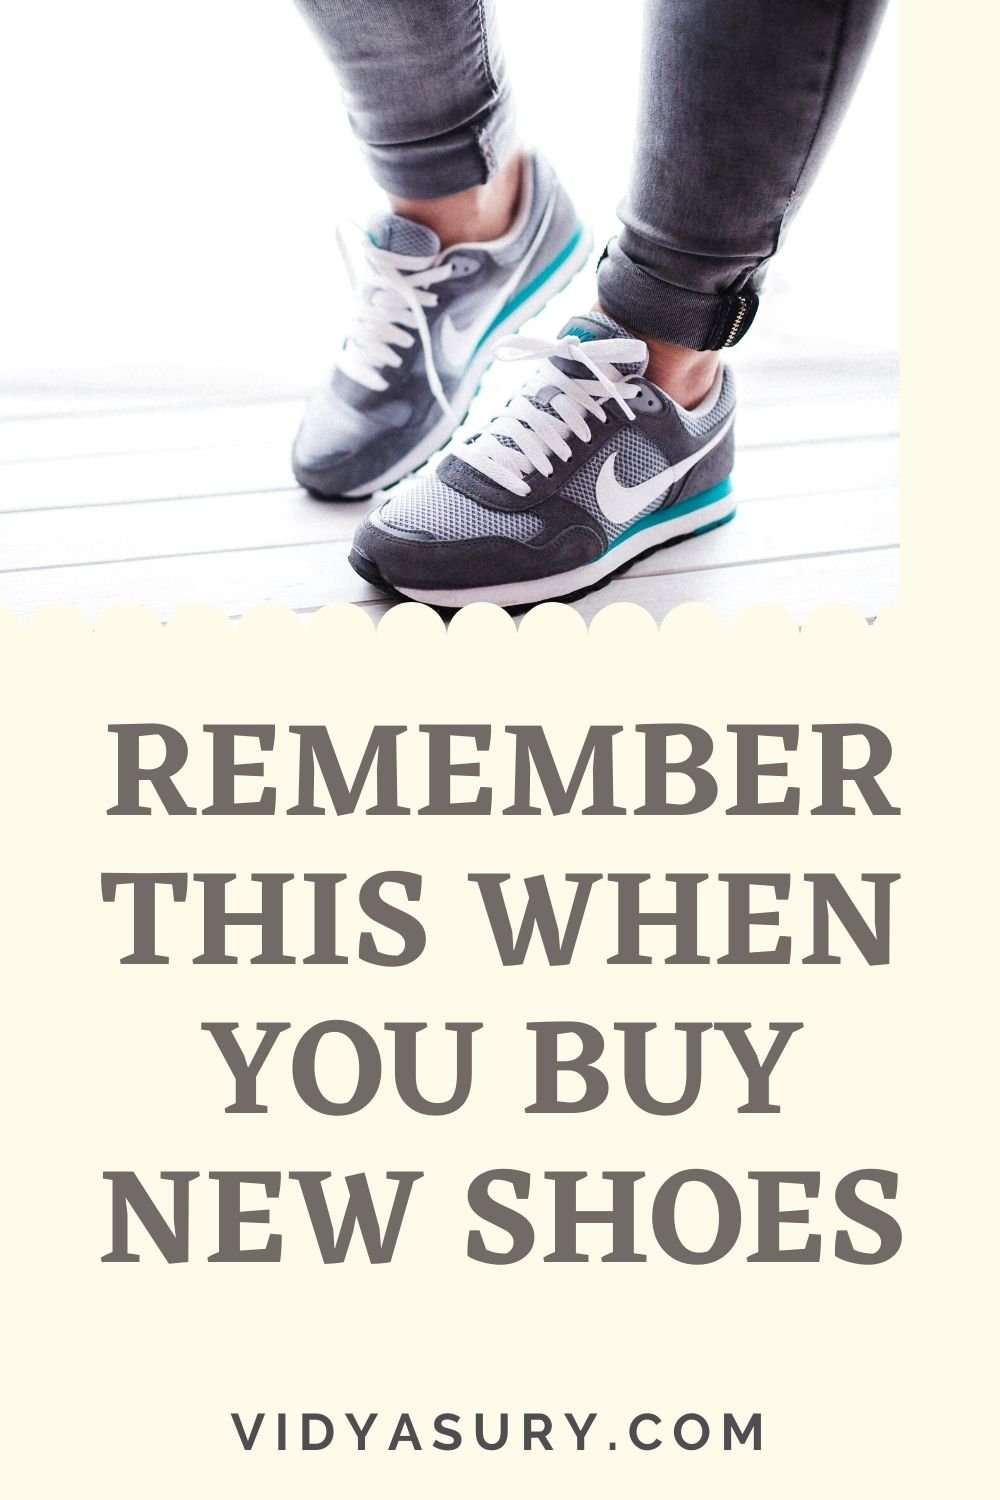 Remember this when you buy new shoes